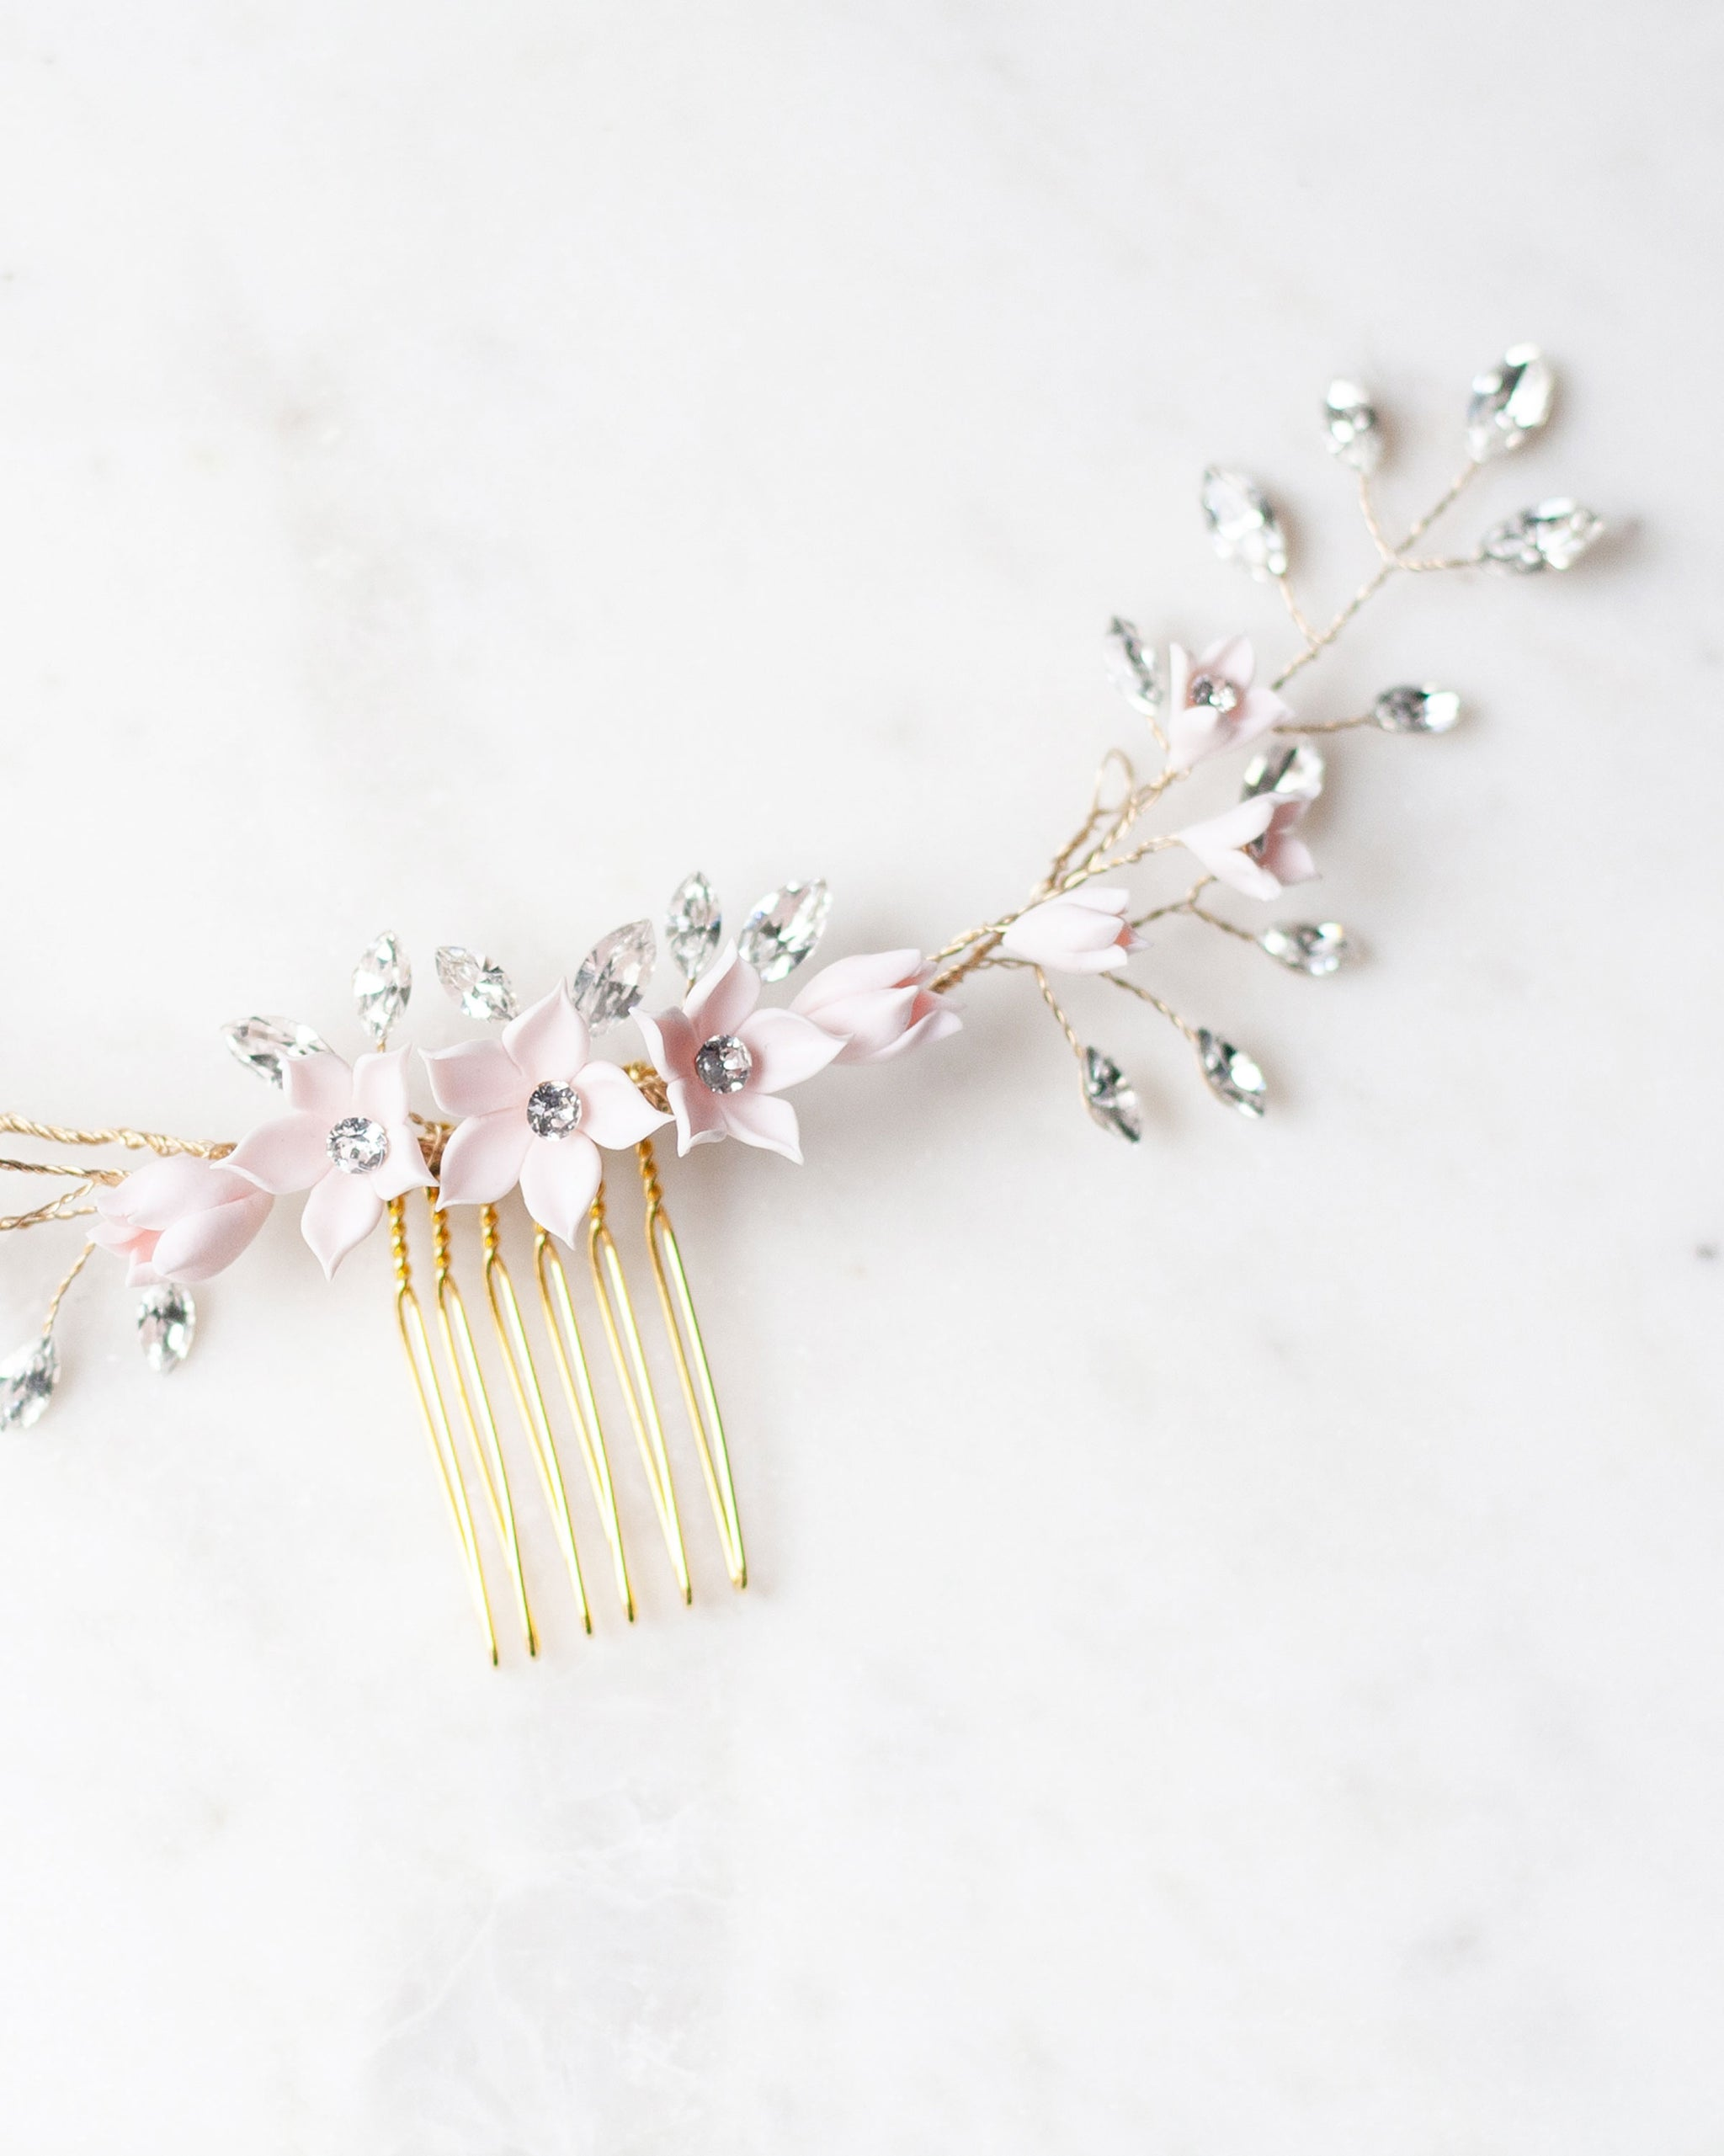 A close up of the Belle Fleur Grand Comb by Atelier Elise, made of delicate flowers, swarovski crystals, and freshwater pearls.